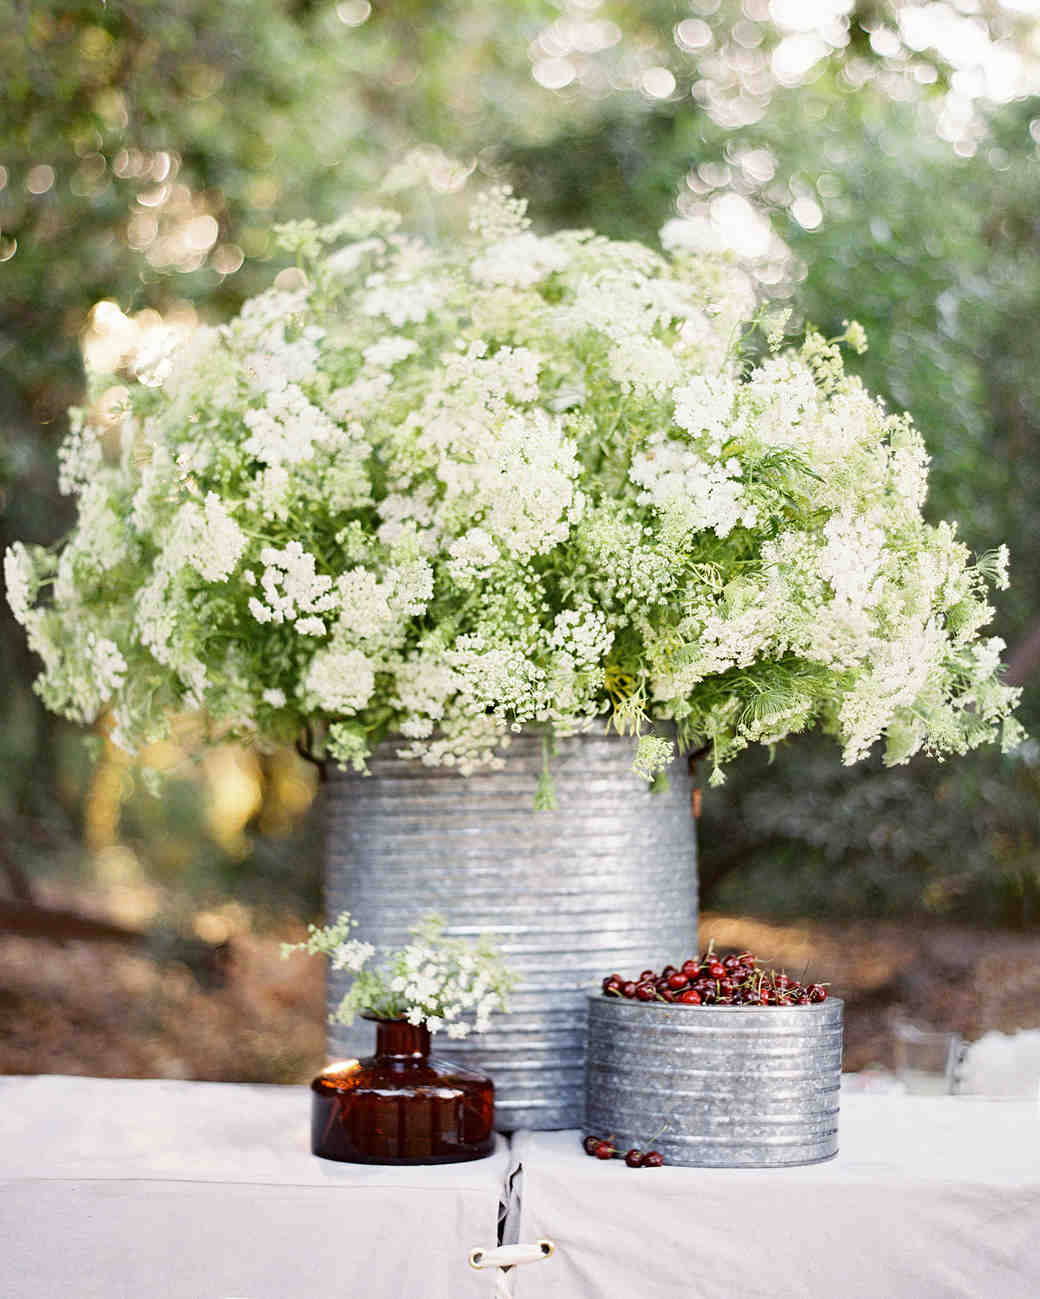 Country Wedding Centerpieces Ideas: 28 Of The Prettiest Rustic Wedding Centerpieces